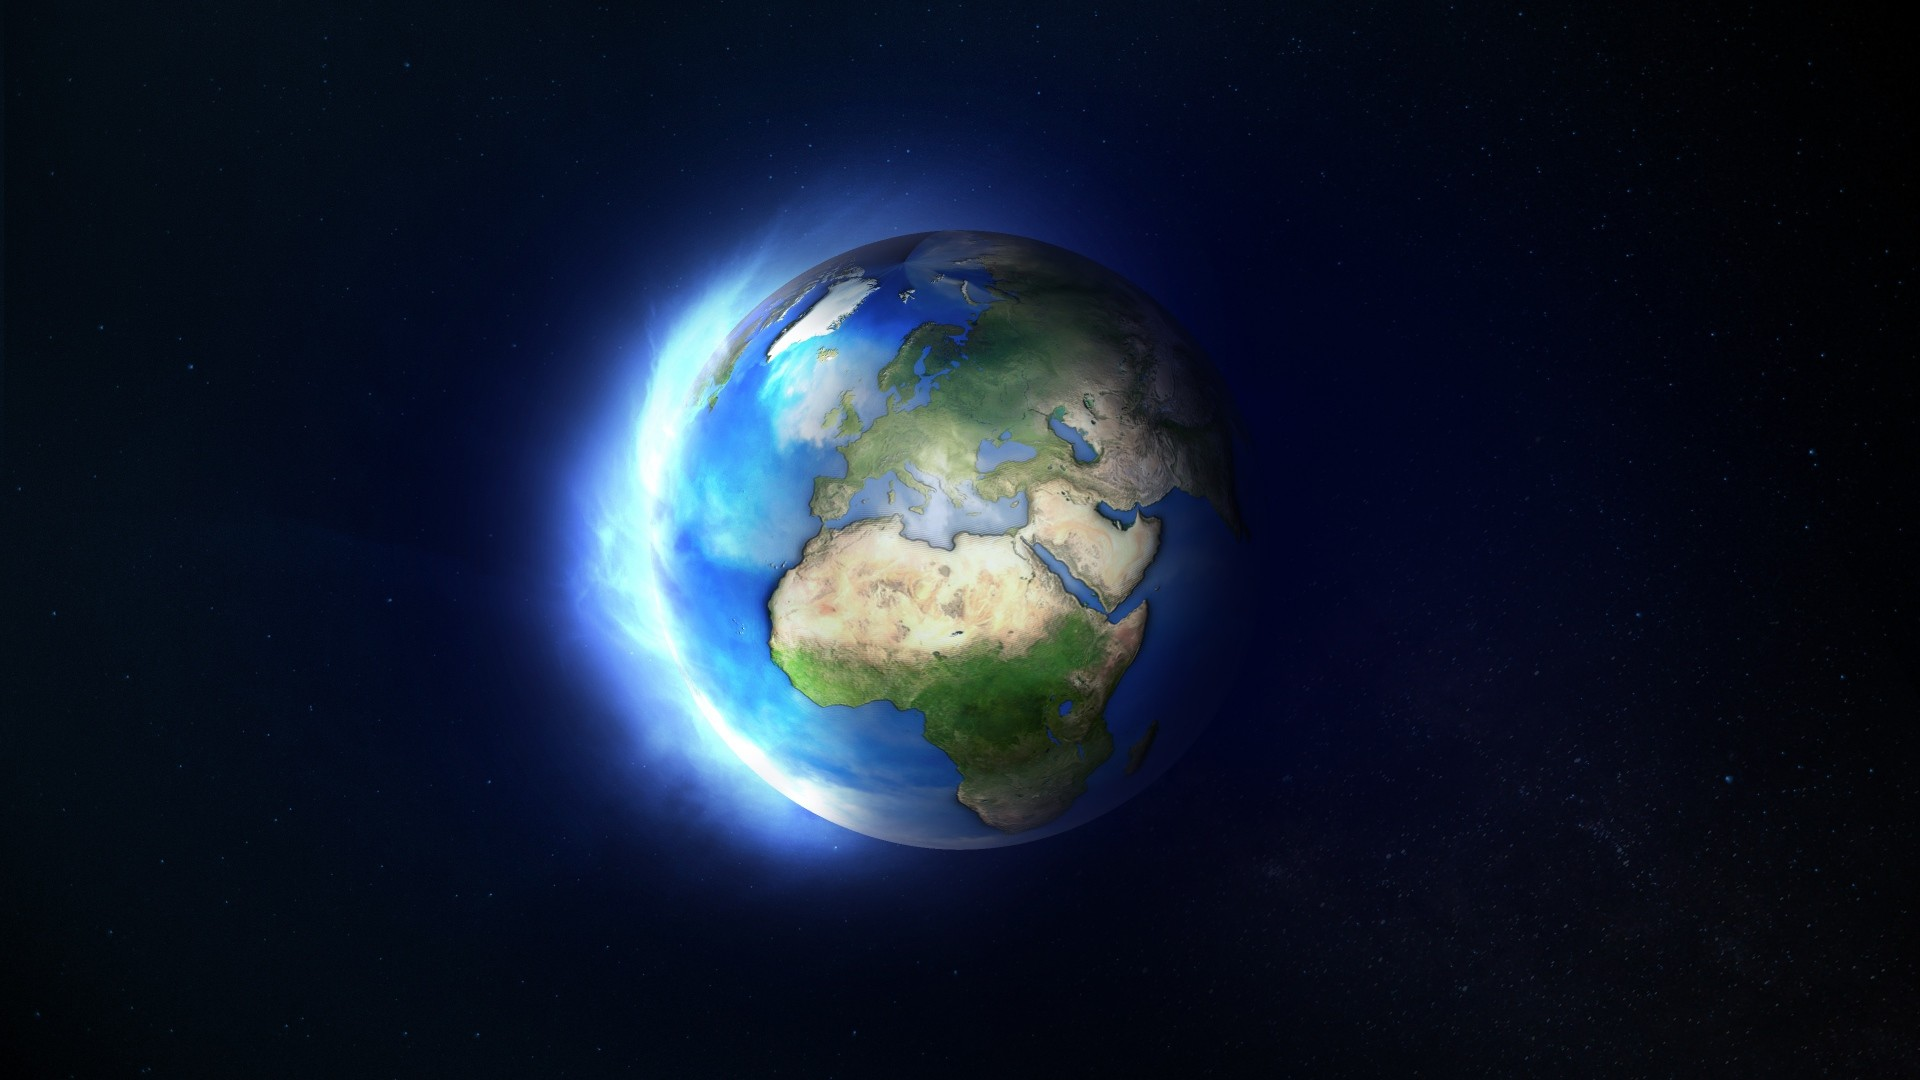 Wallpaper earth, planet, space